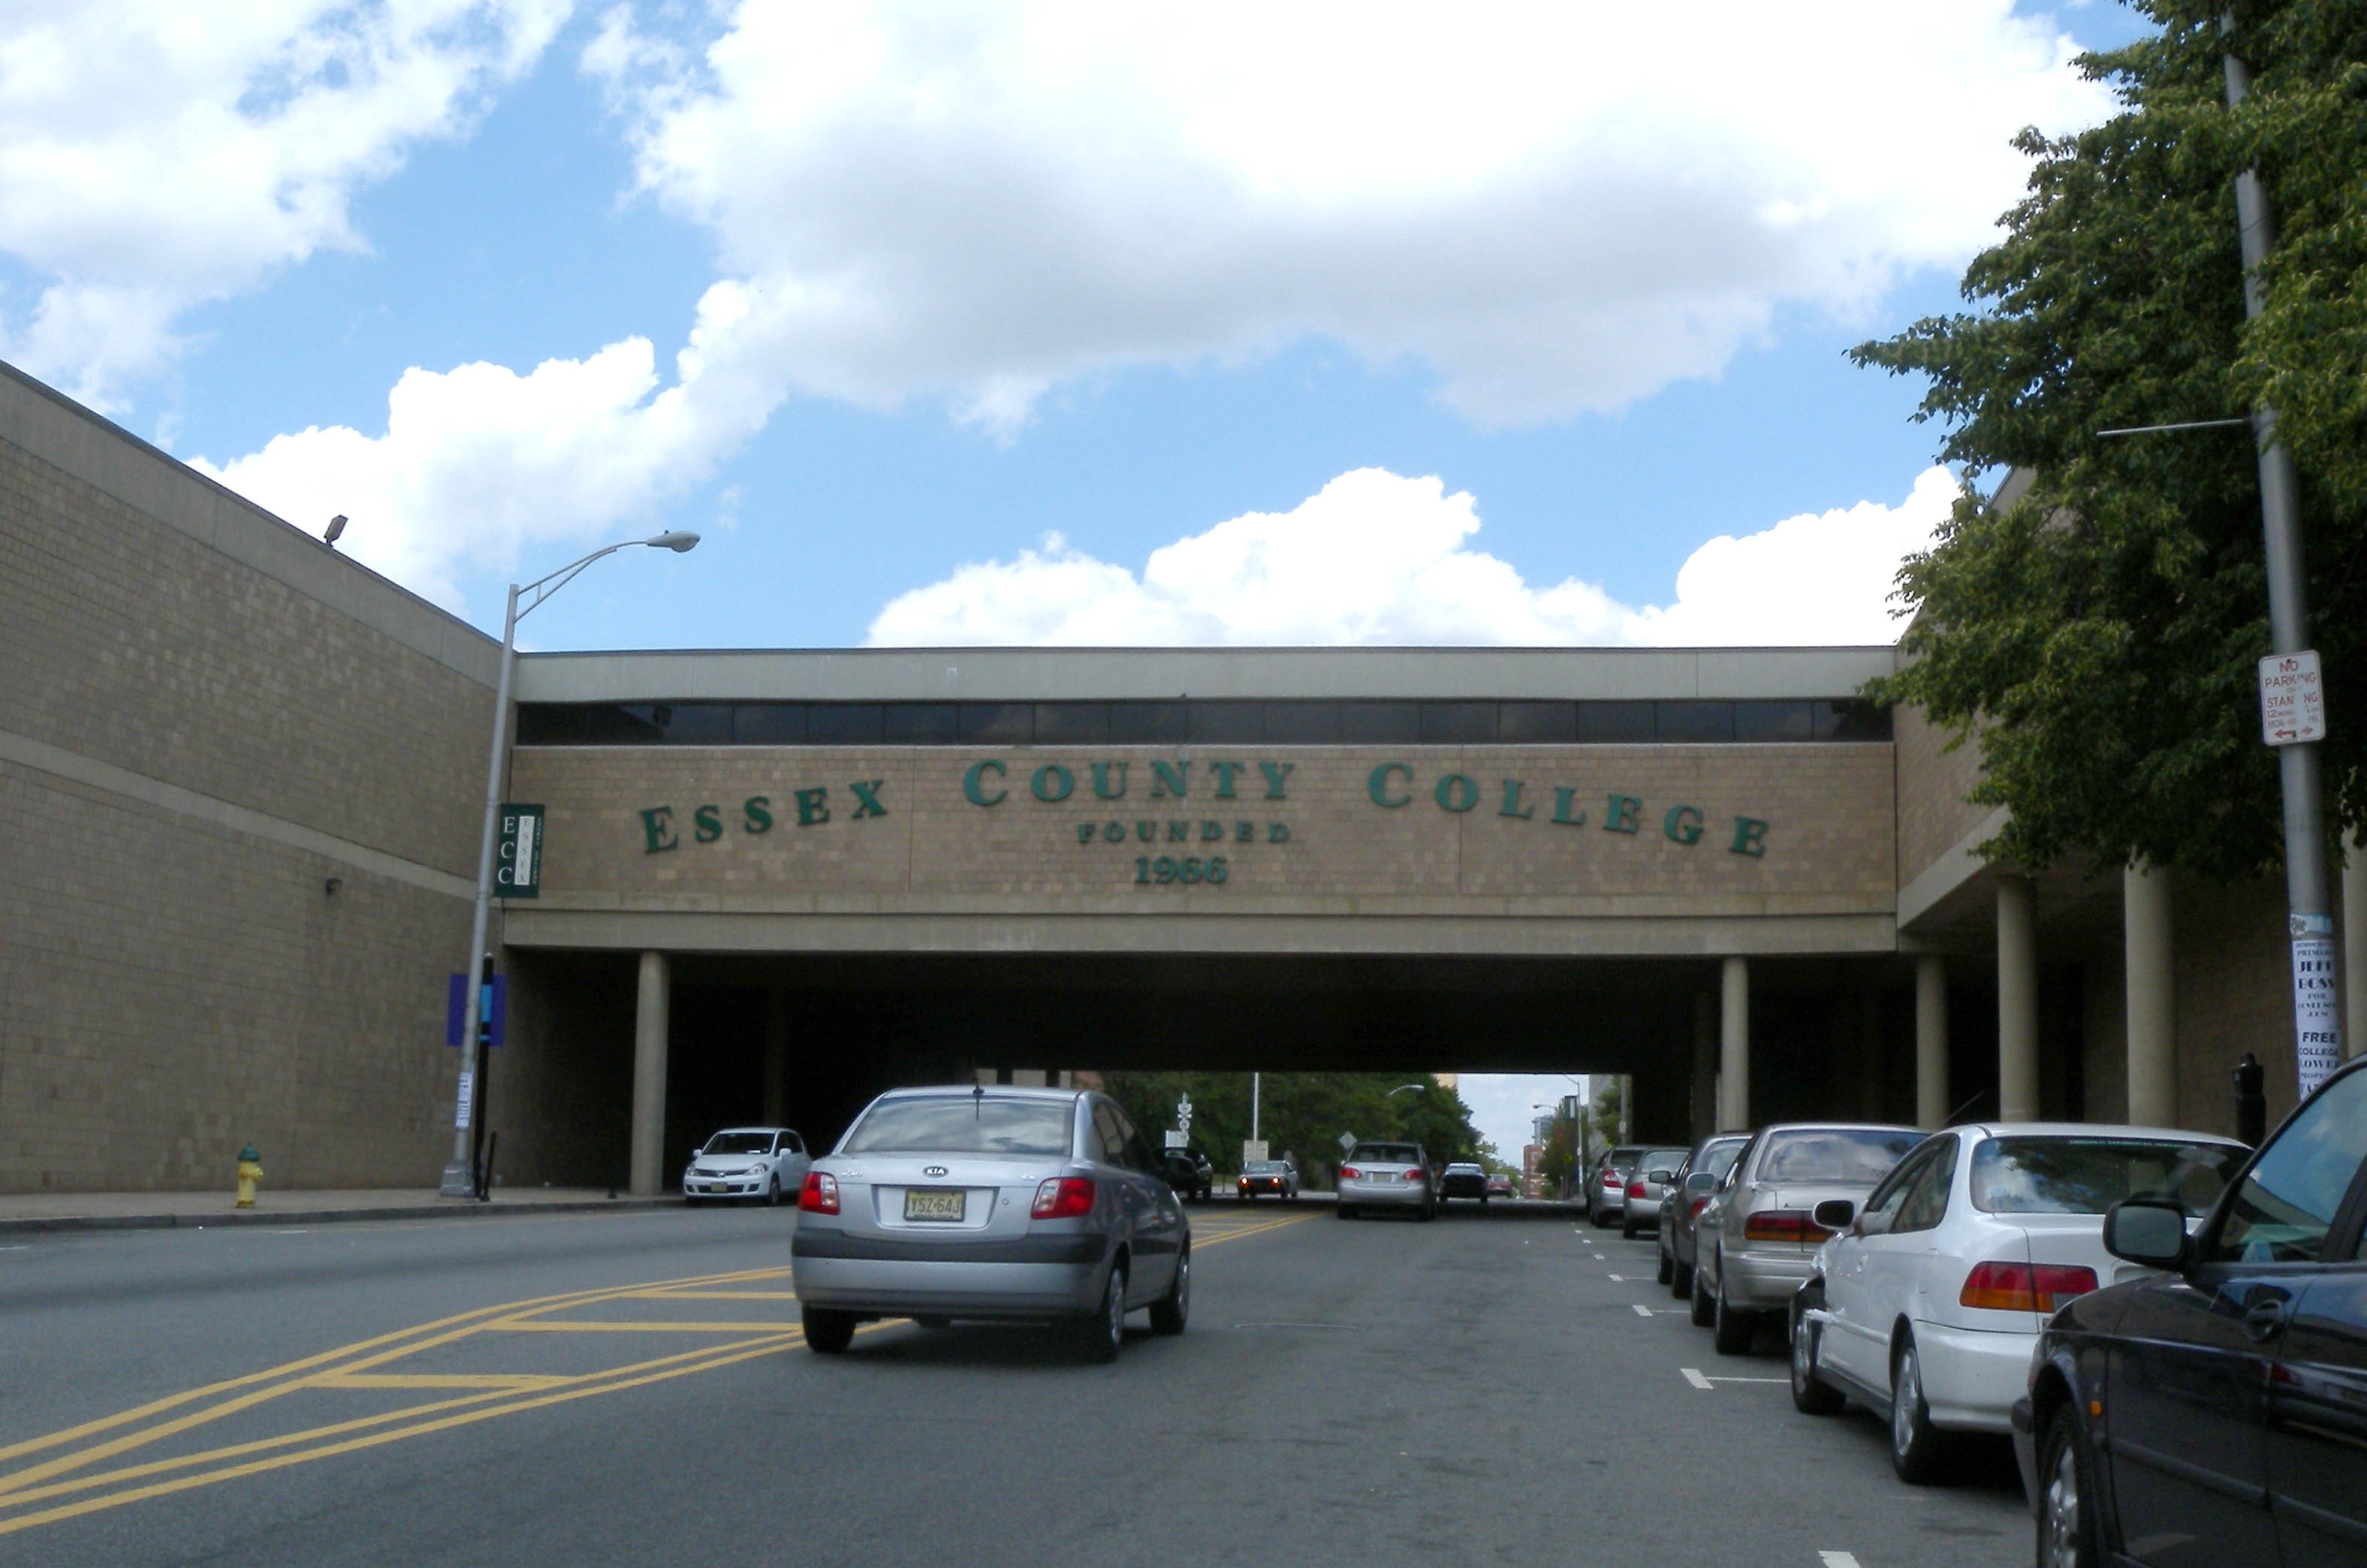 Essex County College GED Programs http://wn.com/Essex_County_College